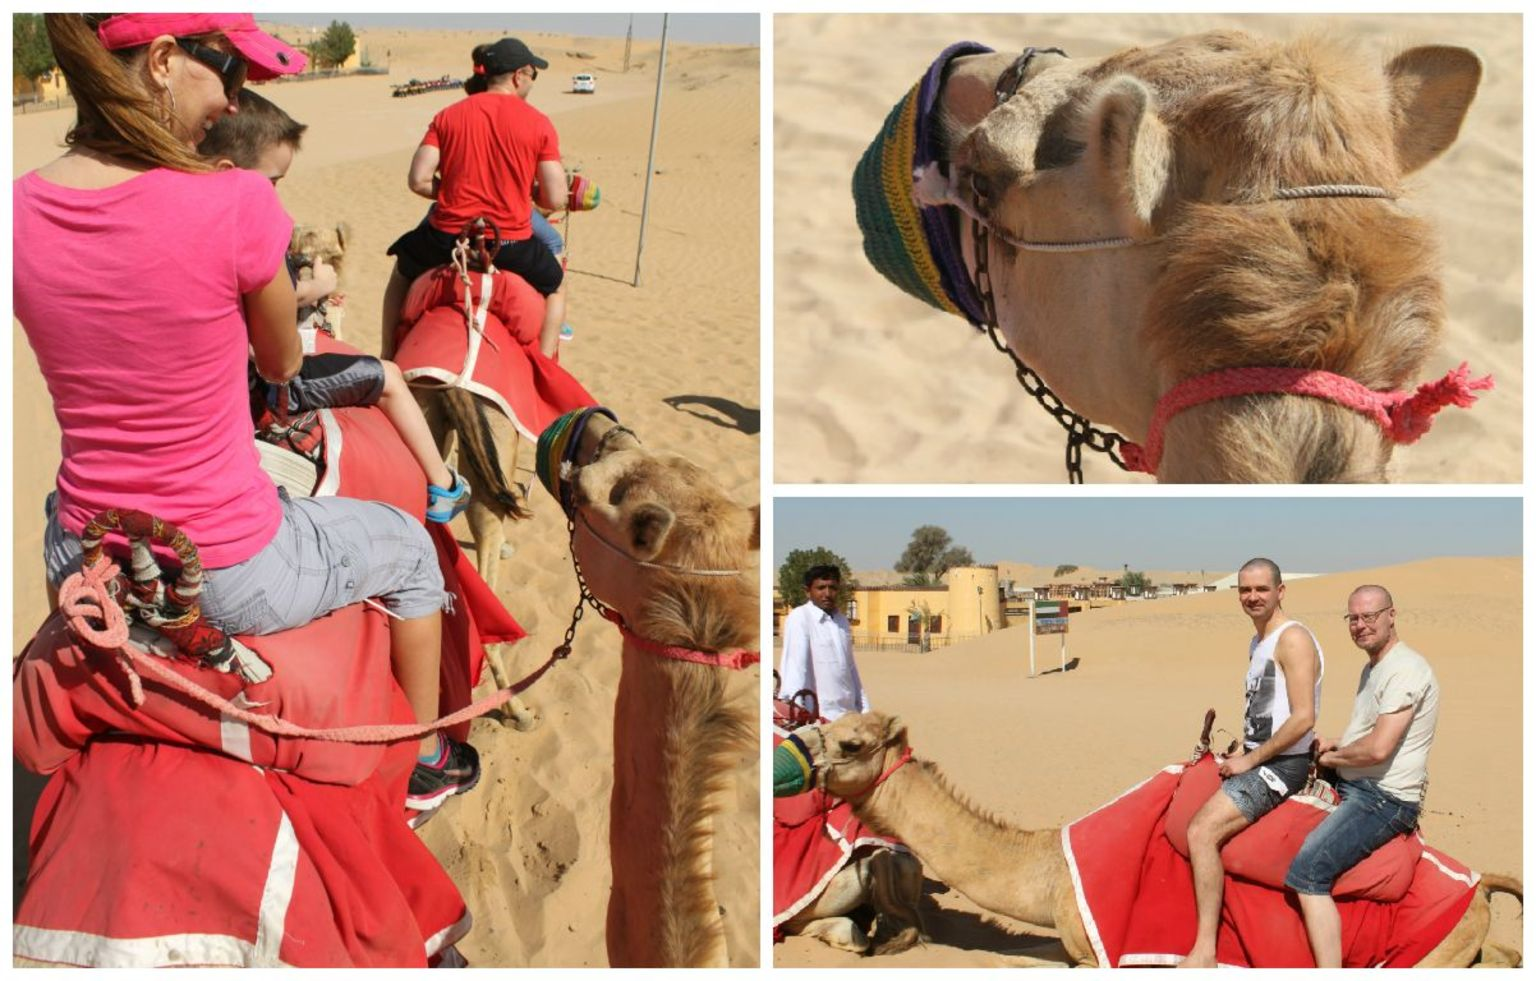 """camel rider prue mason essay Lost in the desert, adam meets walid, an abused camel boy who is on the run prue mason's """"camel rider"""" is one of those treats the story."""